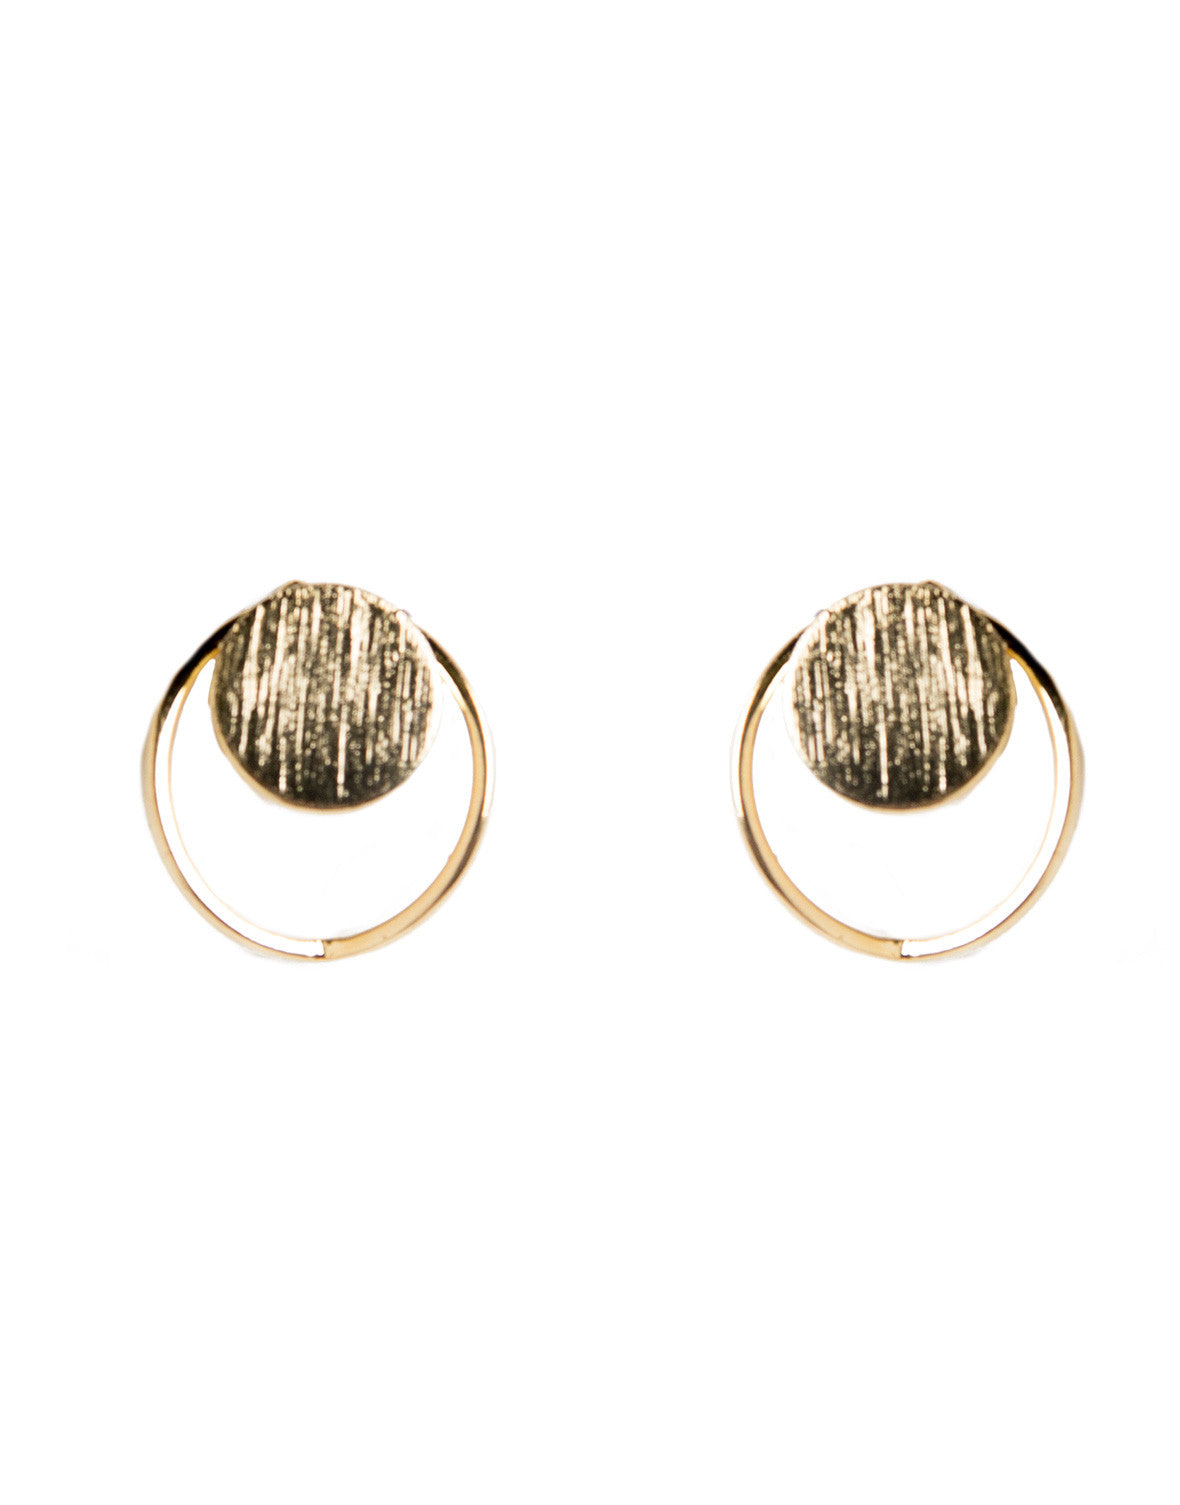 Circle Dot Cut Out Stud Earrings - Gold - Ana GE 7405-Gold